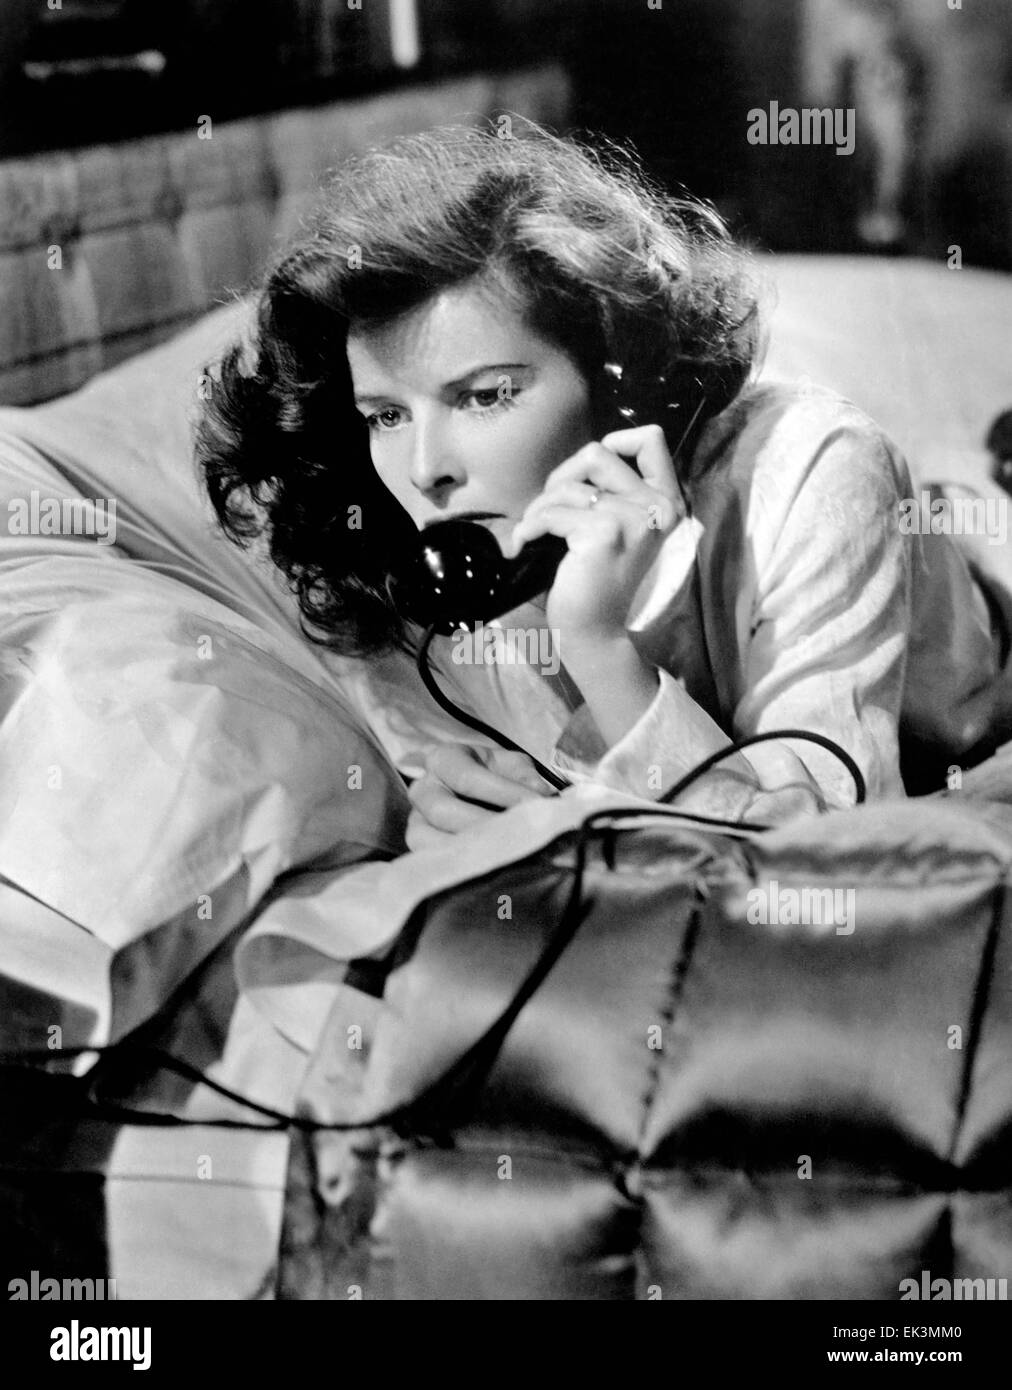 Katharine Hepburn, on-set of the Film 'Woman of the Year', 1942 - Stock Image